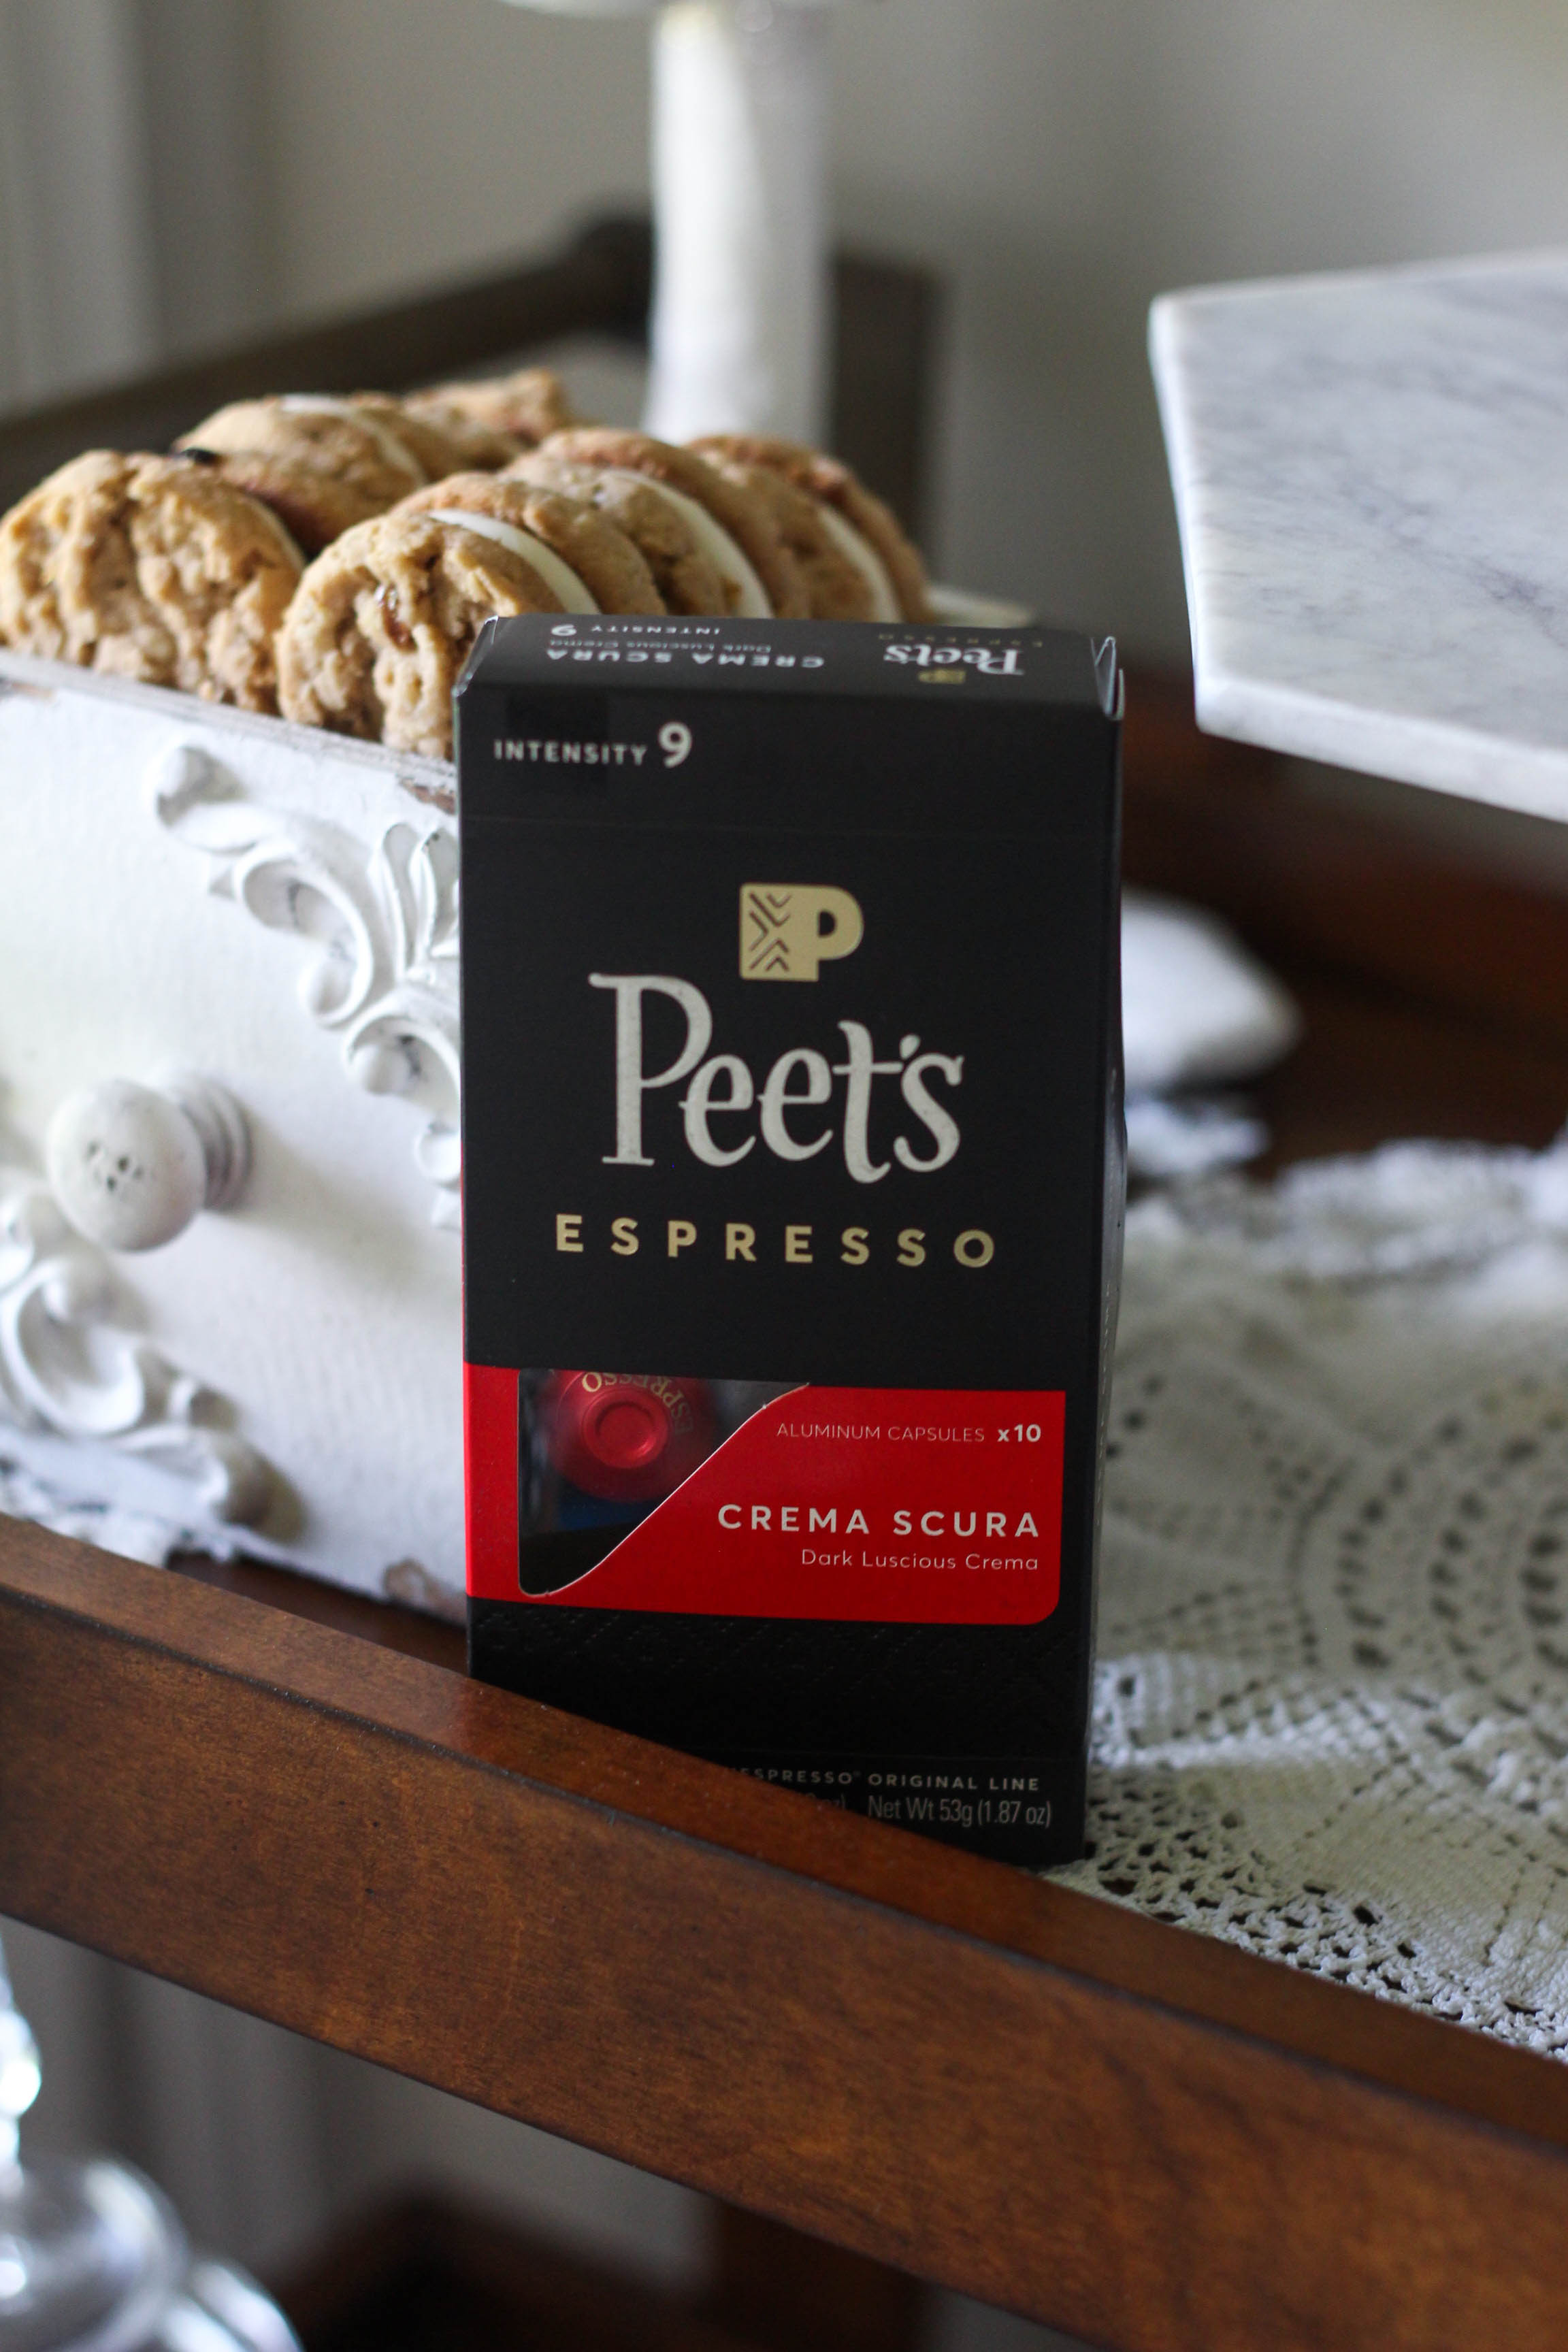 Peets Espresso Capsules for Nespresso Coffee Bar 3 - Caffeine Fix with Peet's Espresso